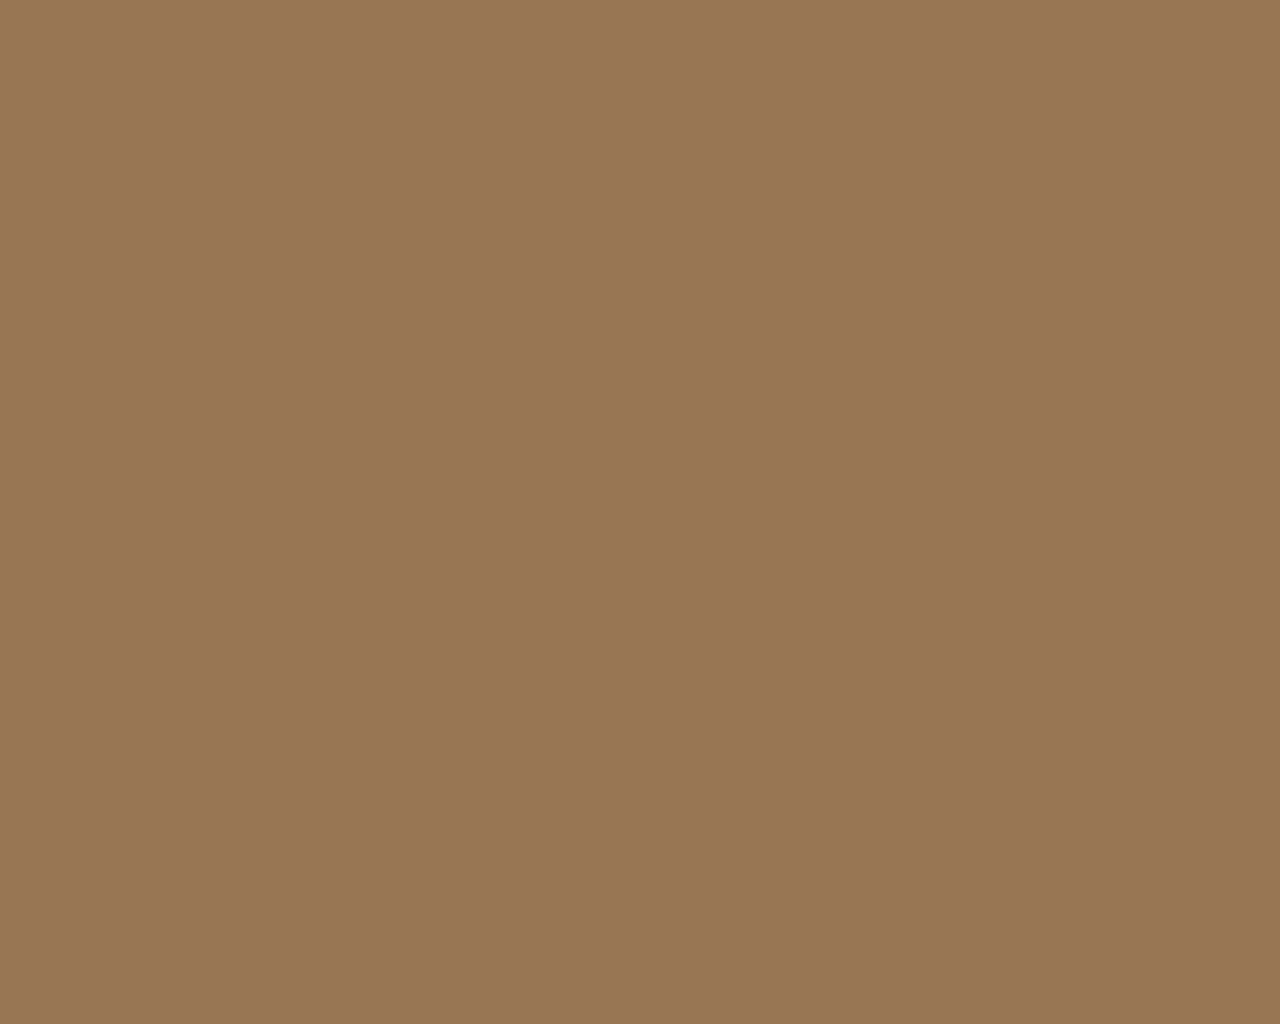 1280x1024 Pale Brown Solid Color Background